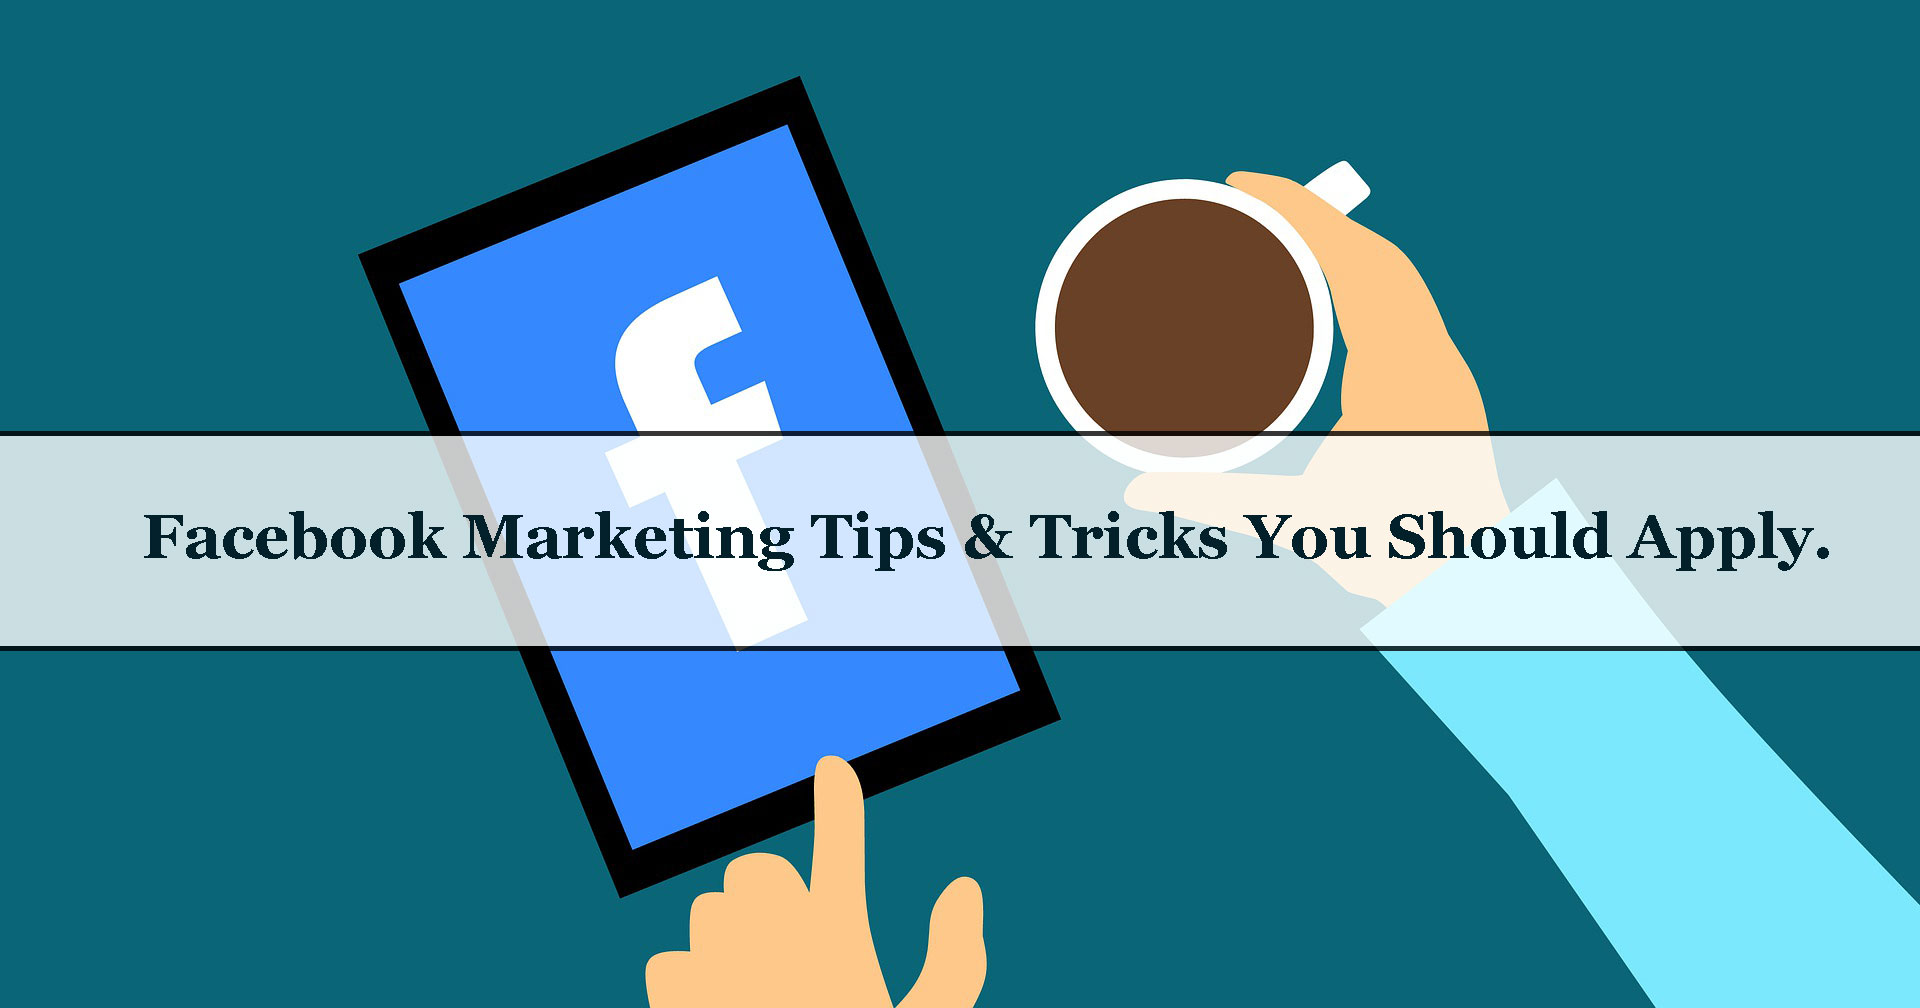 Top 7 Facebook Marketing Tips Every Business Should Know